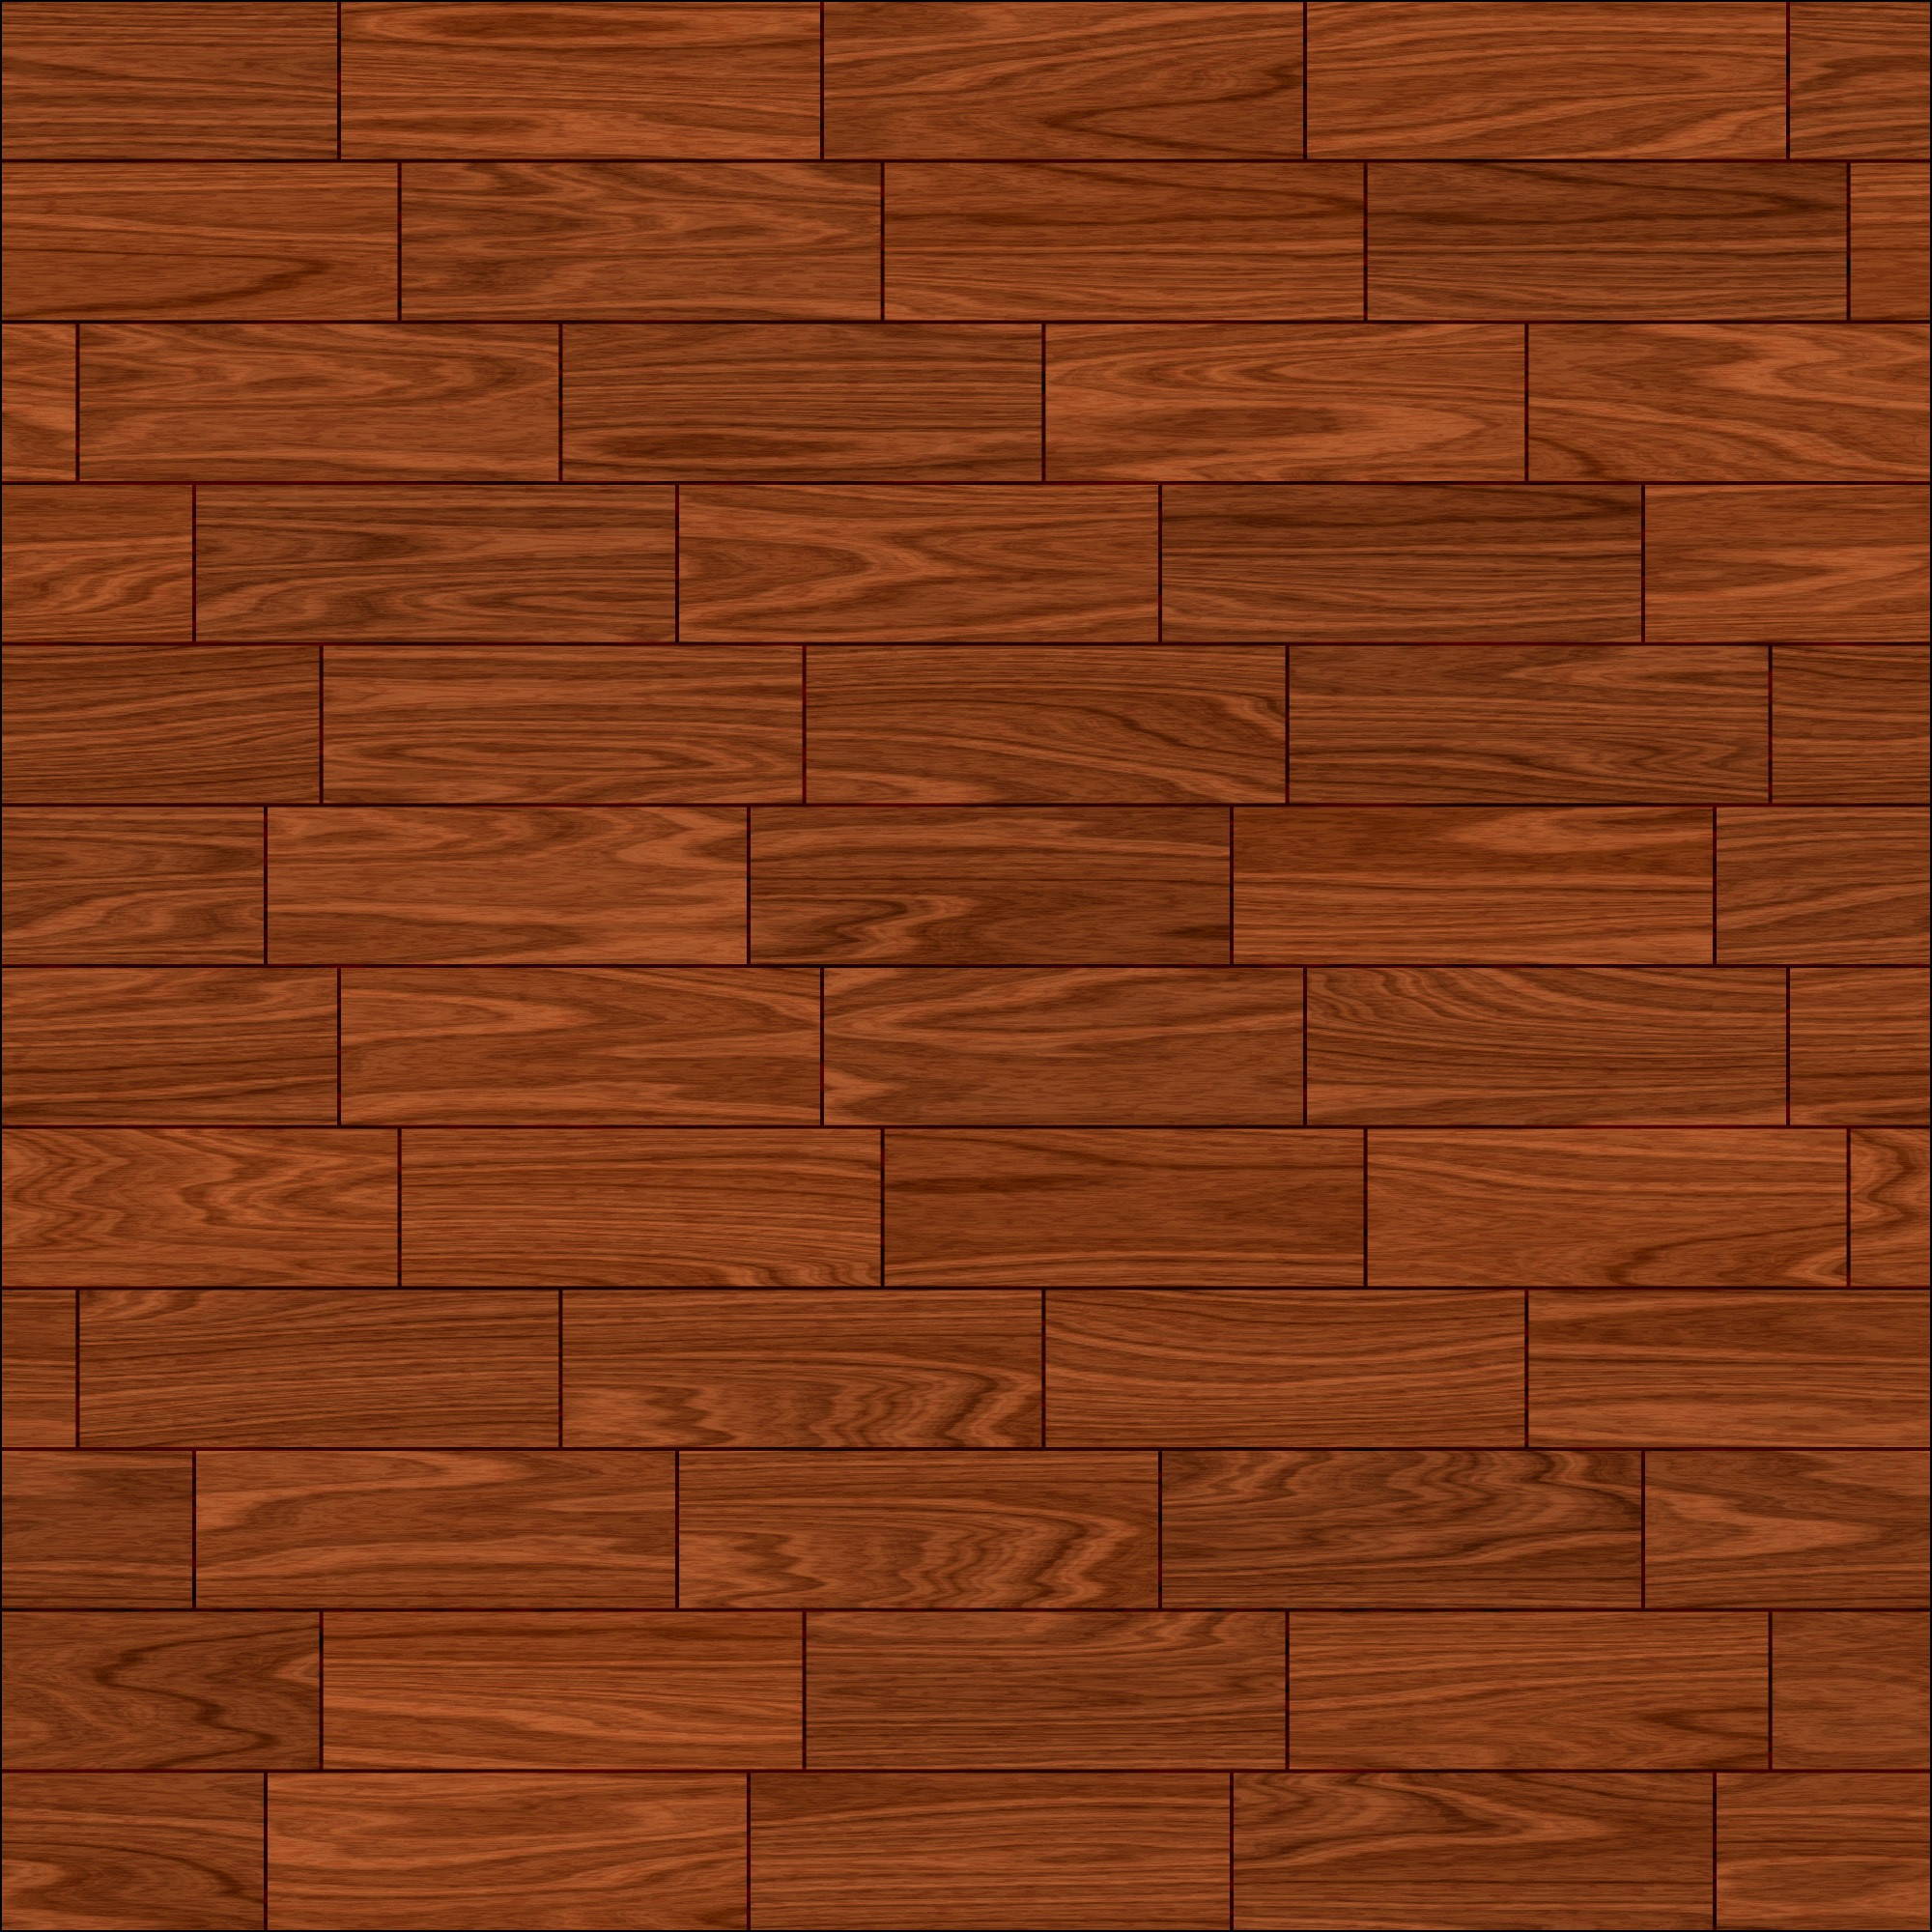 bruce hardwood floors lowes of wide plank flooring ideas in wide plank wood flooring lowes galerie nice wide plank flooring installation guide for wood floor of